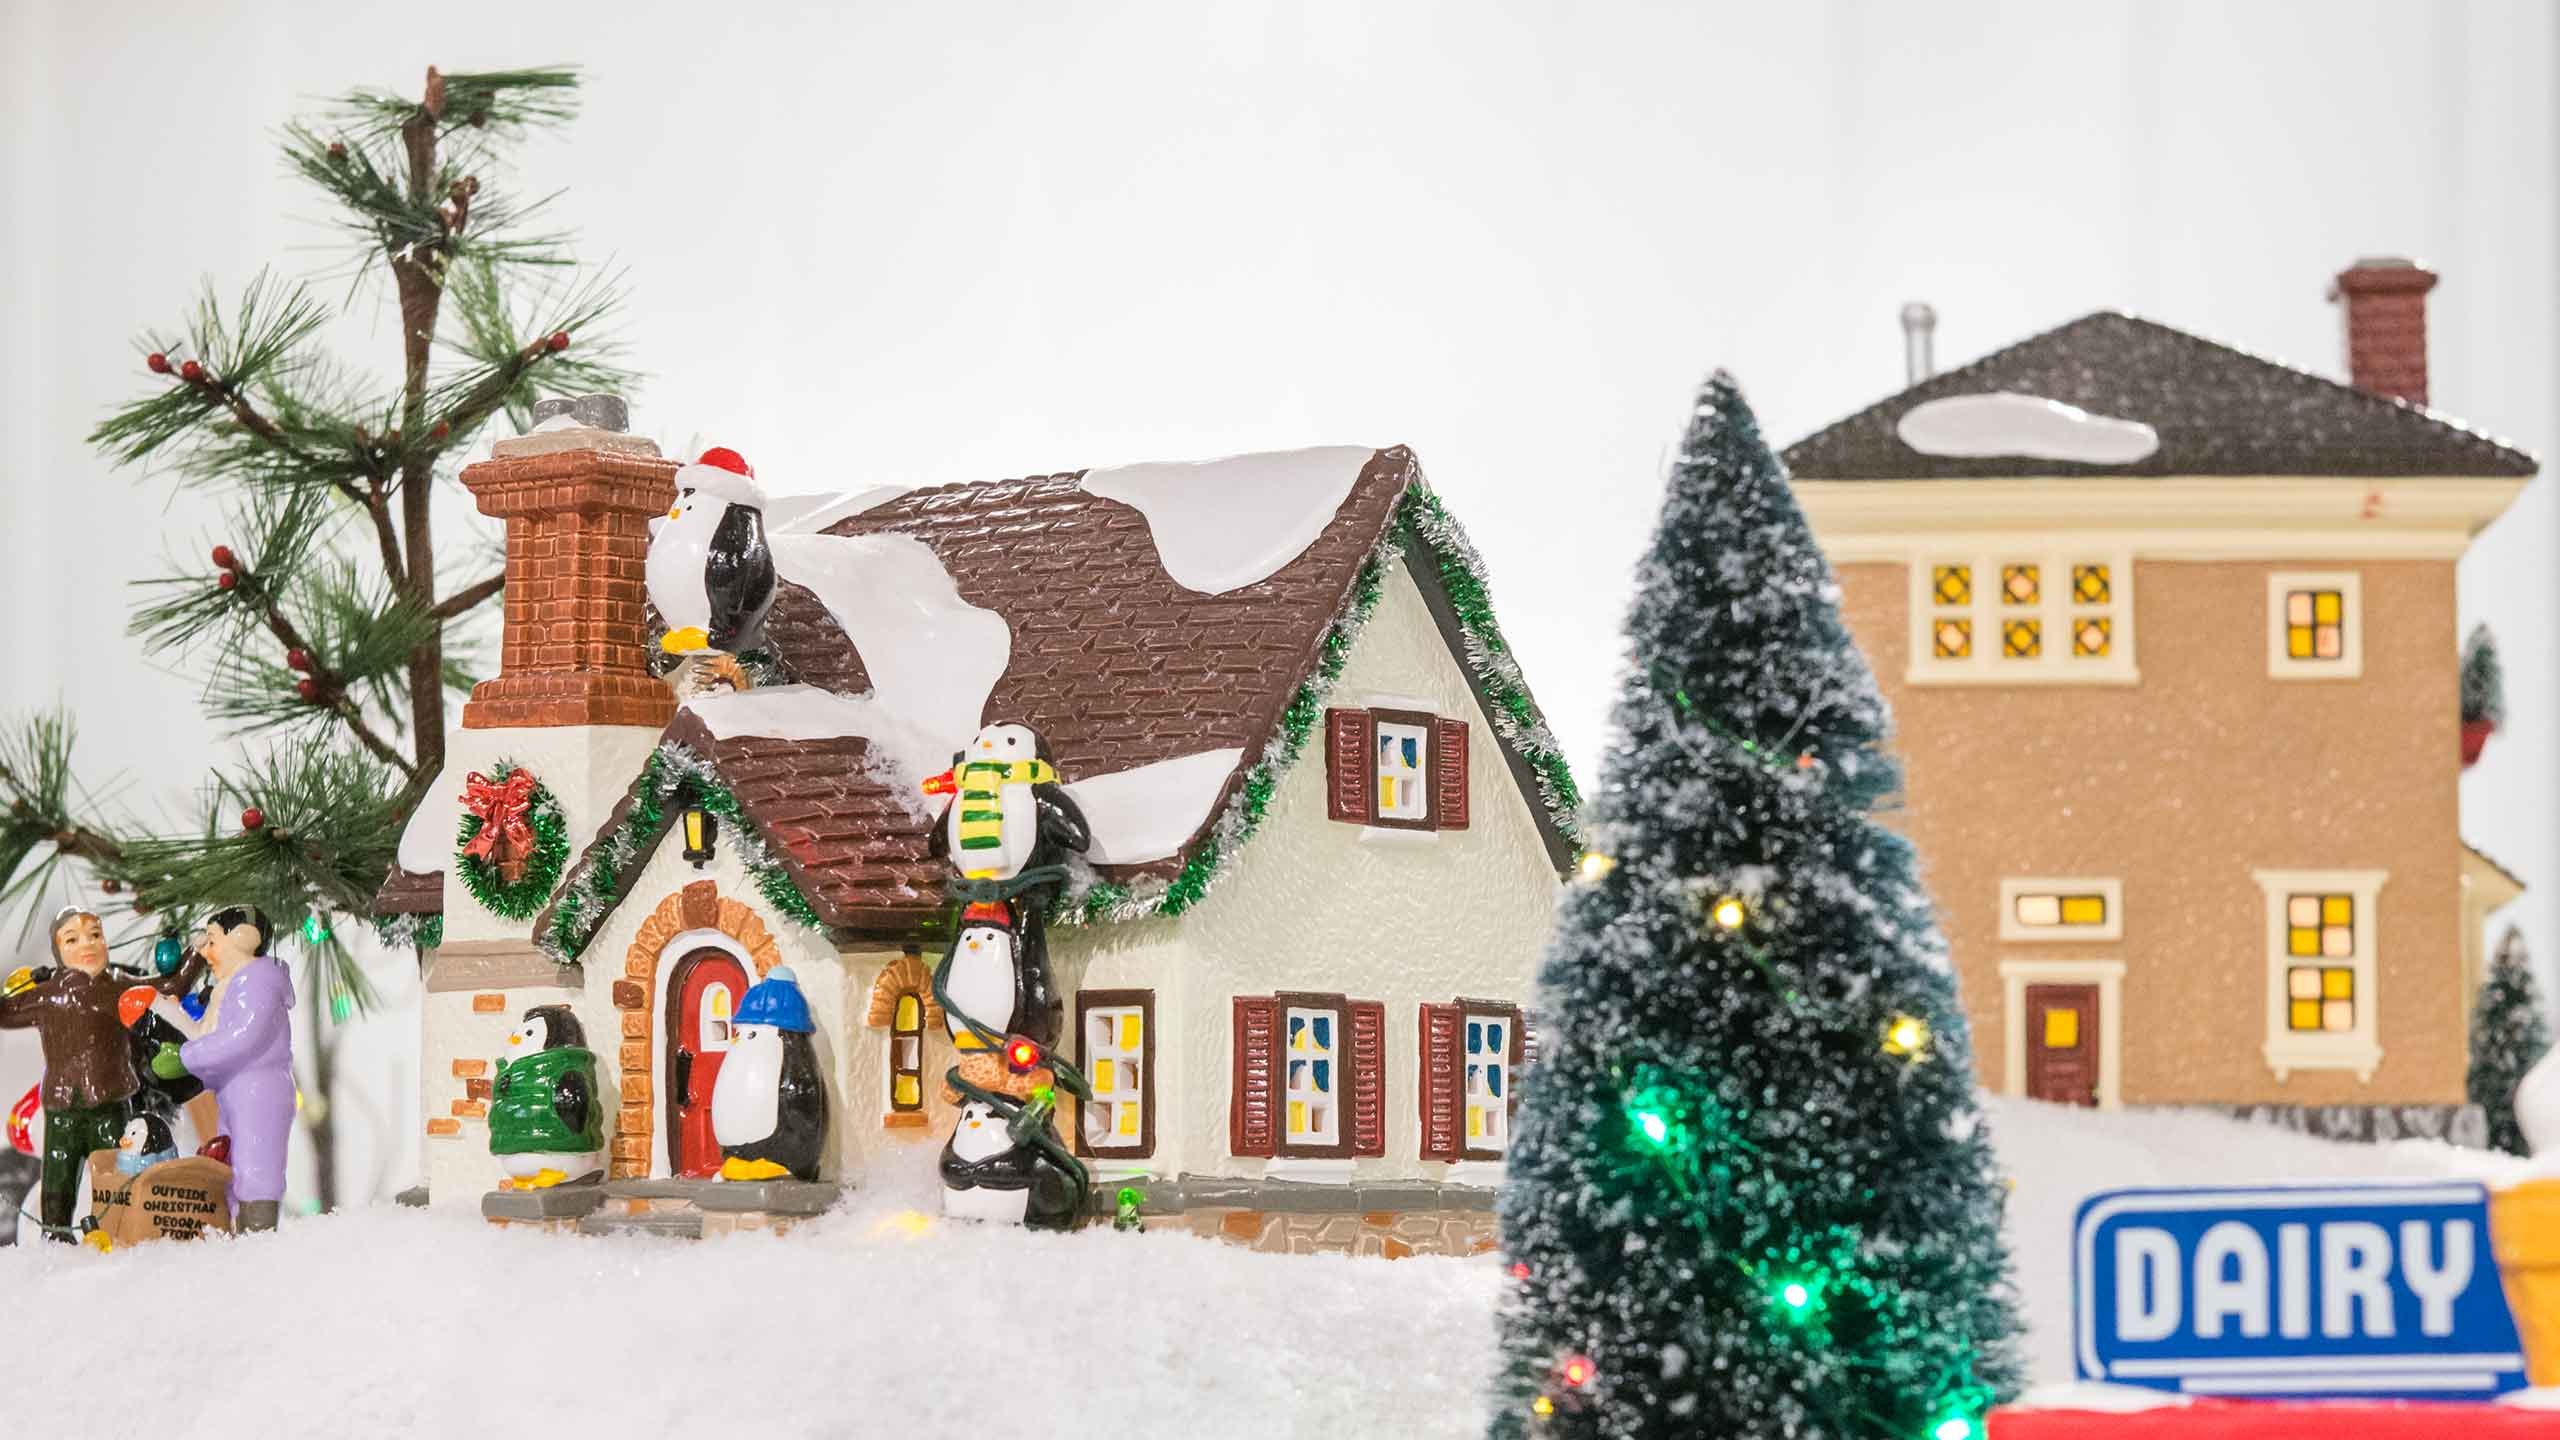 department 56 is putting their focus on expanding the original snow village a collection celebrating the history and culture found in our own main street